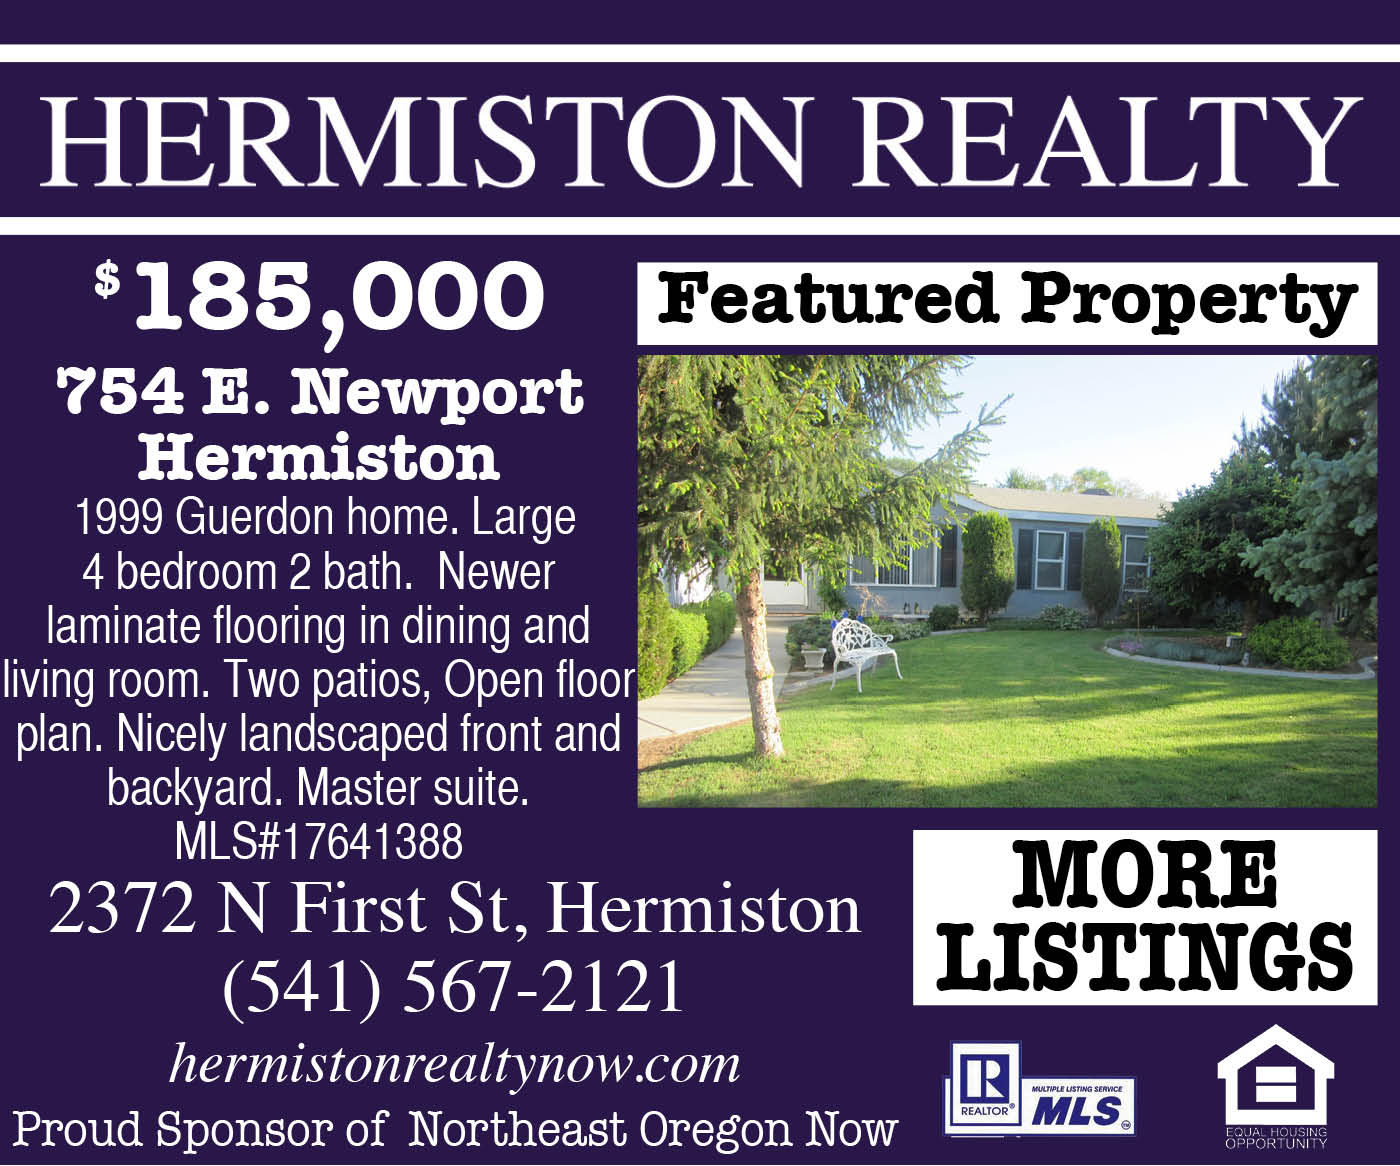 Hermiston Realty Side Ad No. 2 5-22-17 (126)